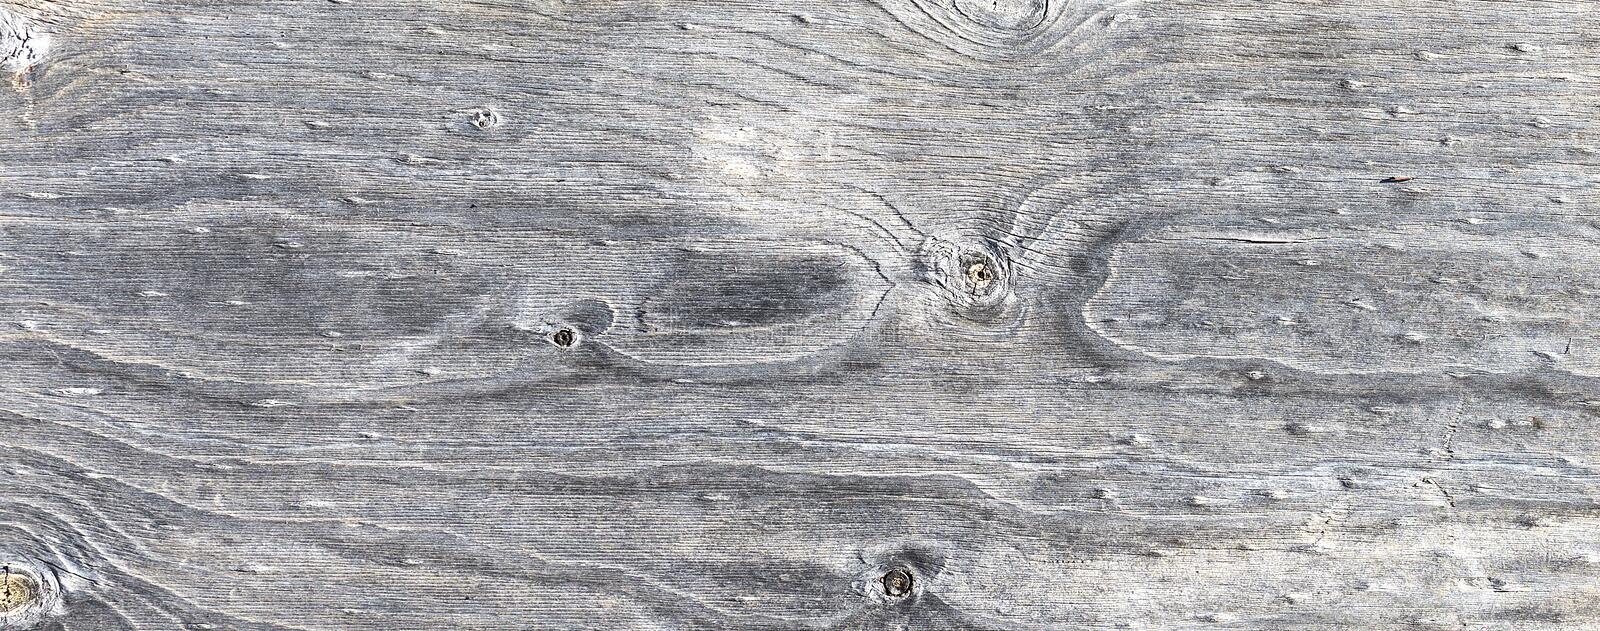 Grey weathered Wood Background. A background of grey weathered wood with a textured surface of knots and wood grain stock photography